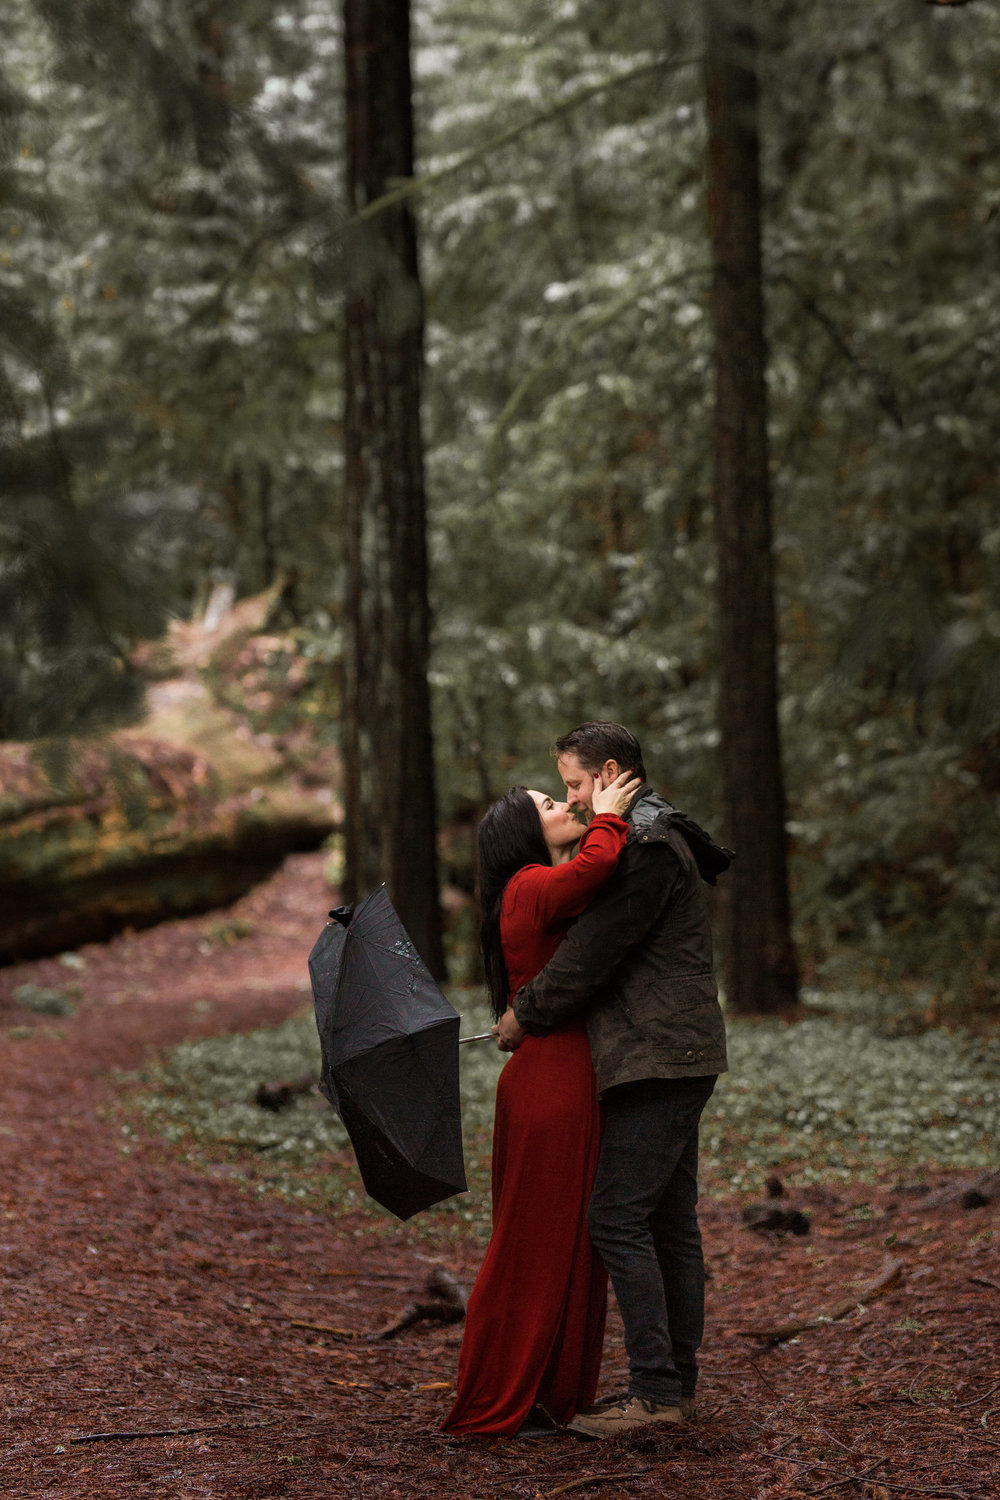 nicole-daacke-photography-redwoods-national-park-forest-rainy-foggy-adventure-engagement-session-humboldt-county-old-growth-redwood-tree-elopement-intimate-wedding-photographer-41.jpg